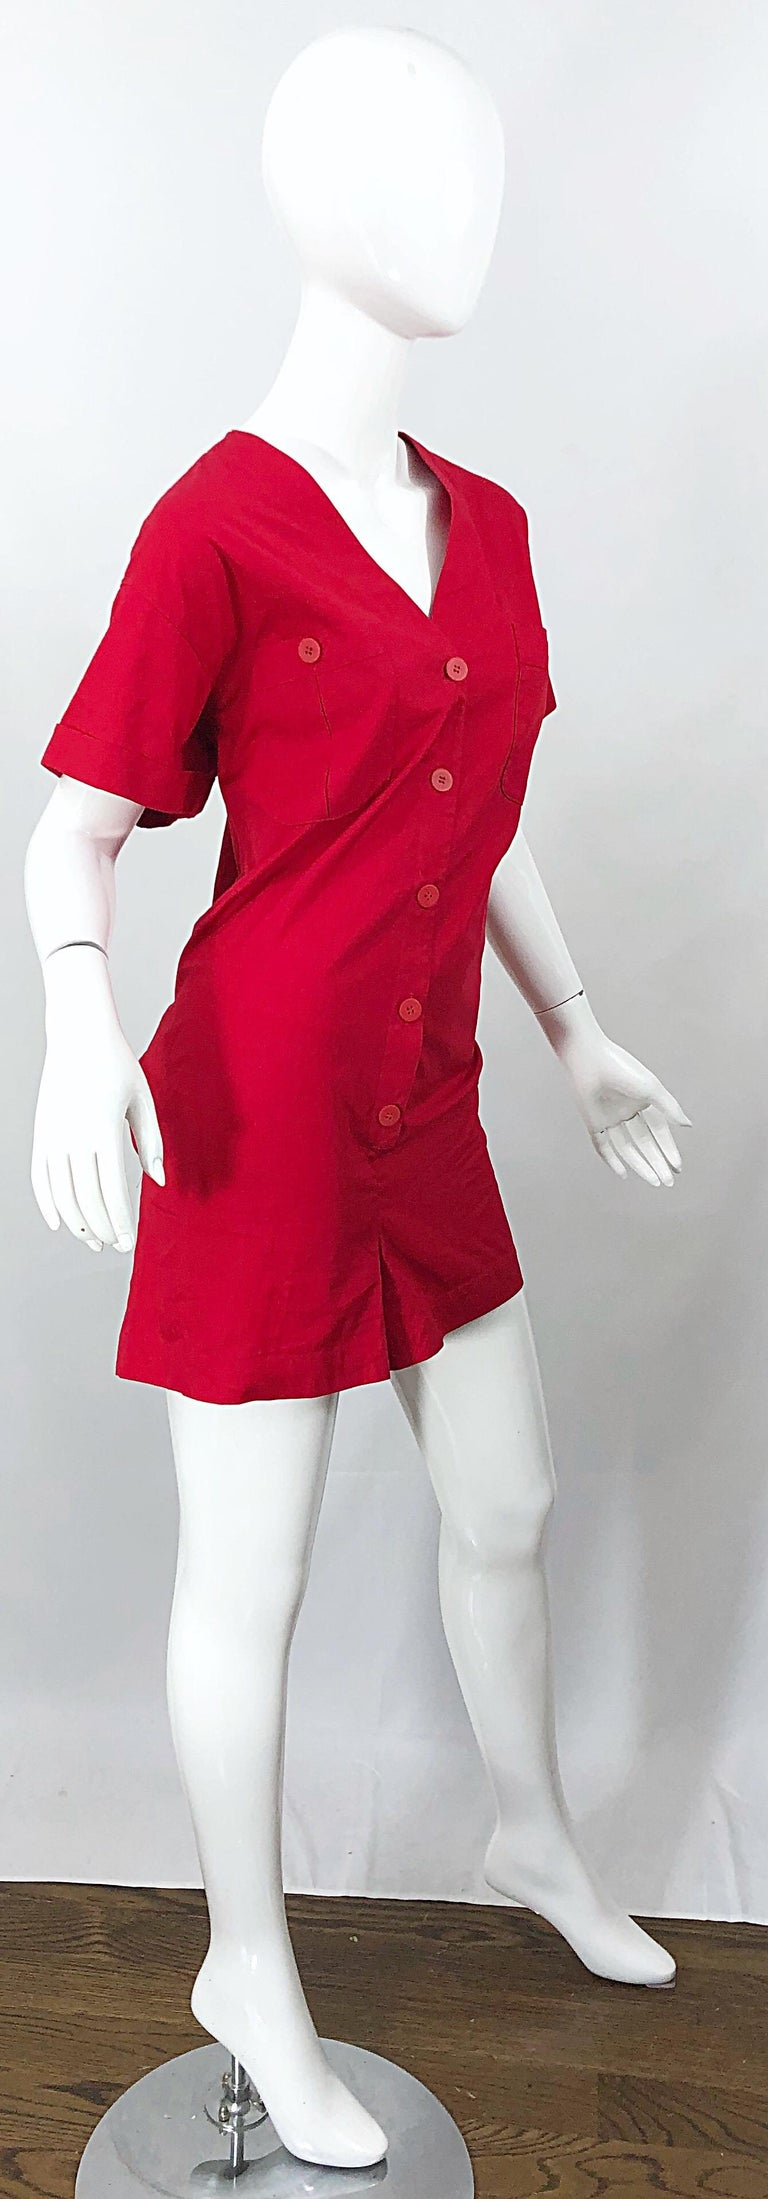 NWT Vintage Christian Dior Romper Size 14 Lipstick Red Cotton One Piece Jumpsuit For Sale 5